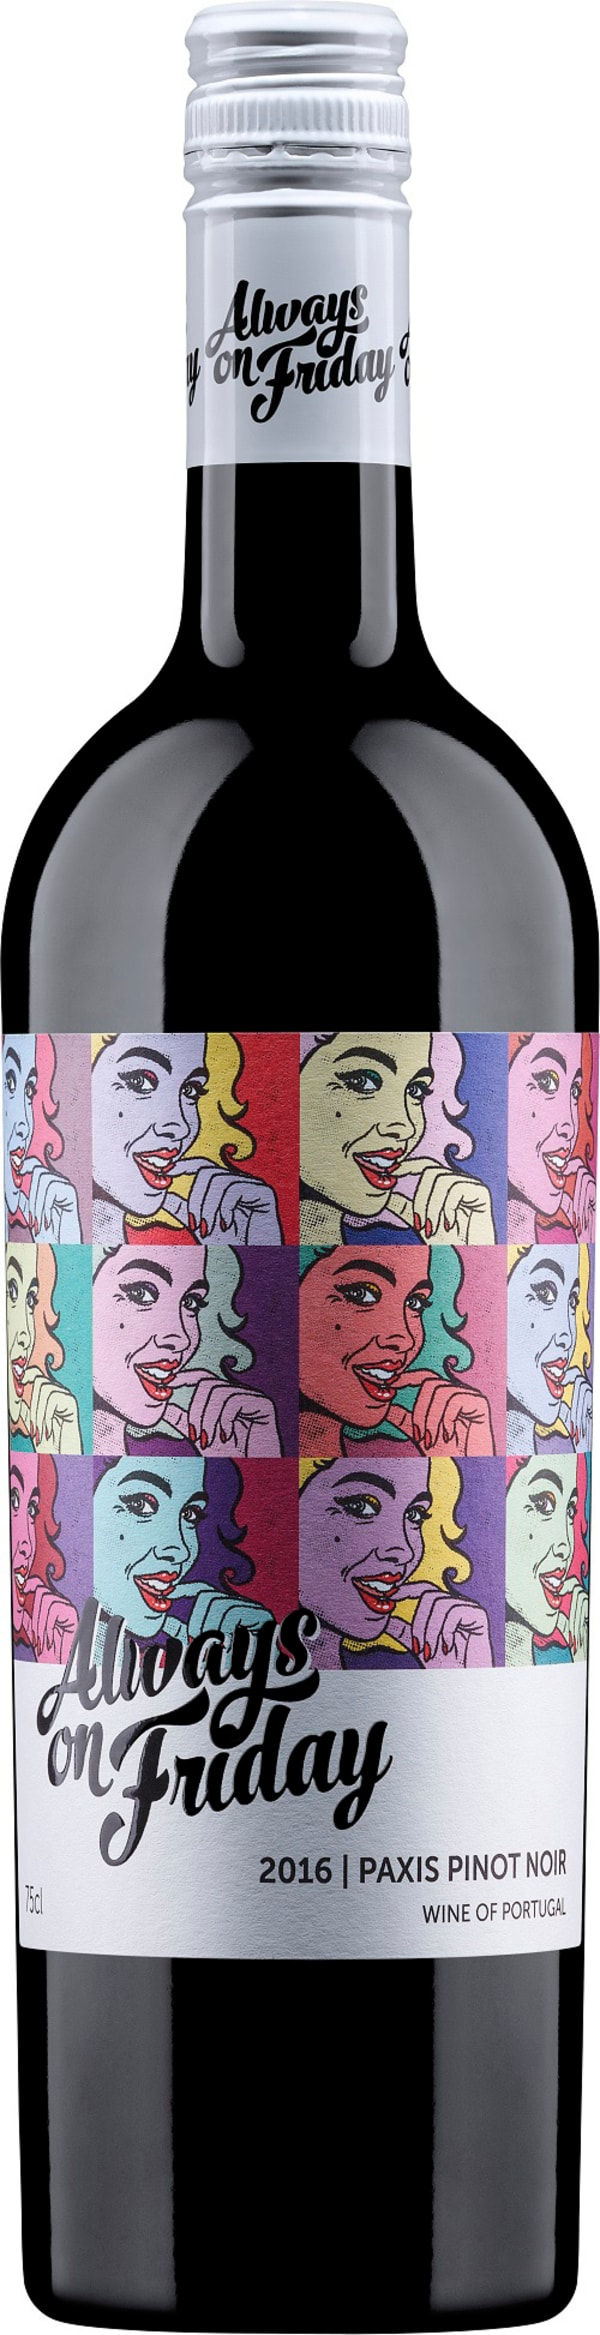 Paxis Always on Friday Pinot Noir 2016